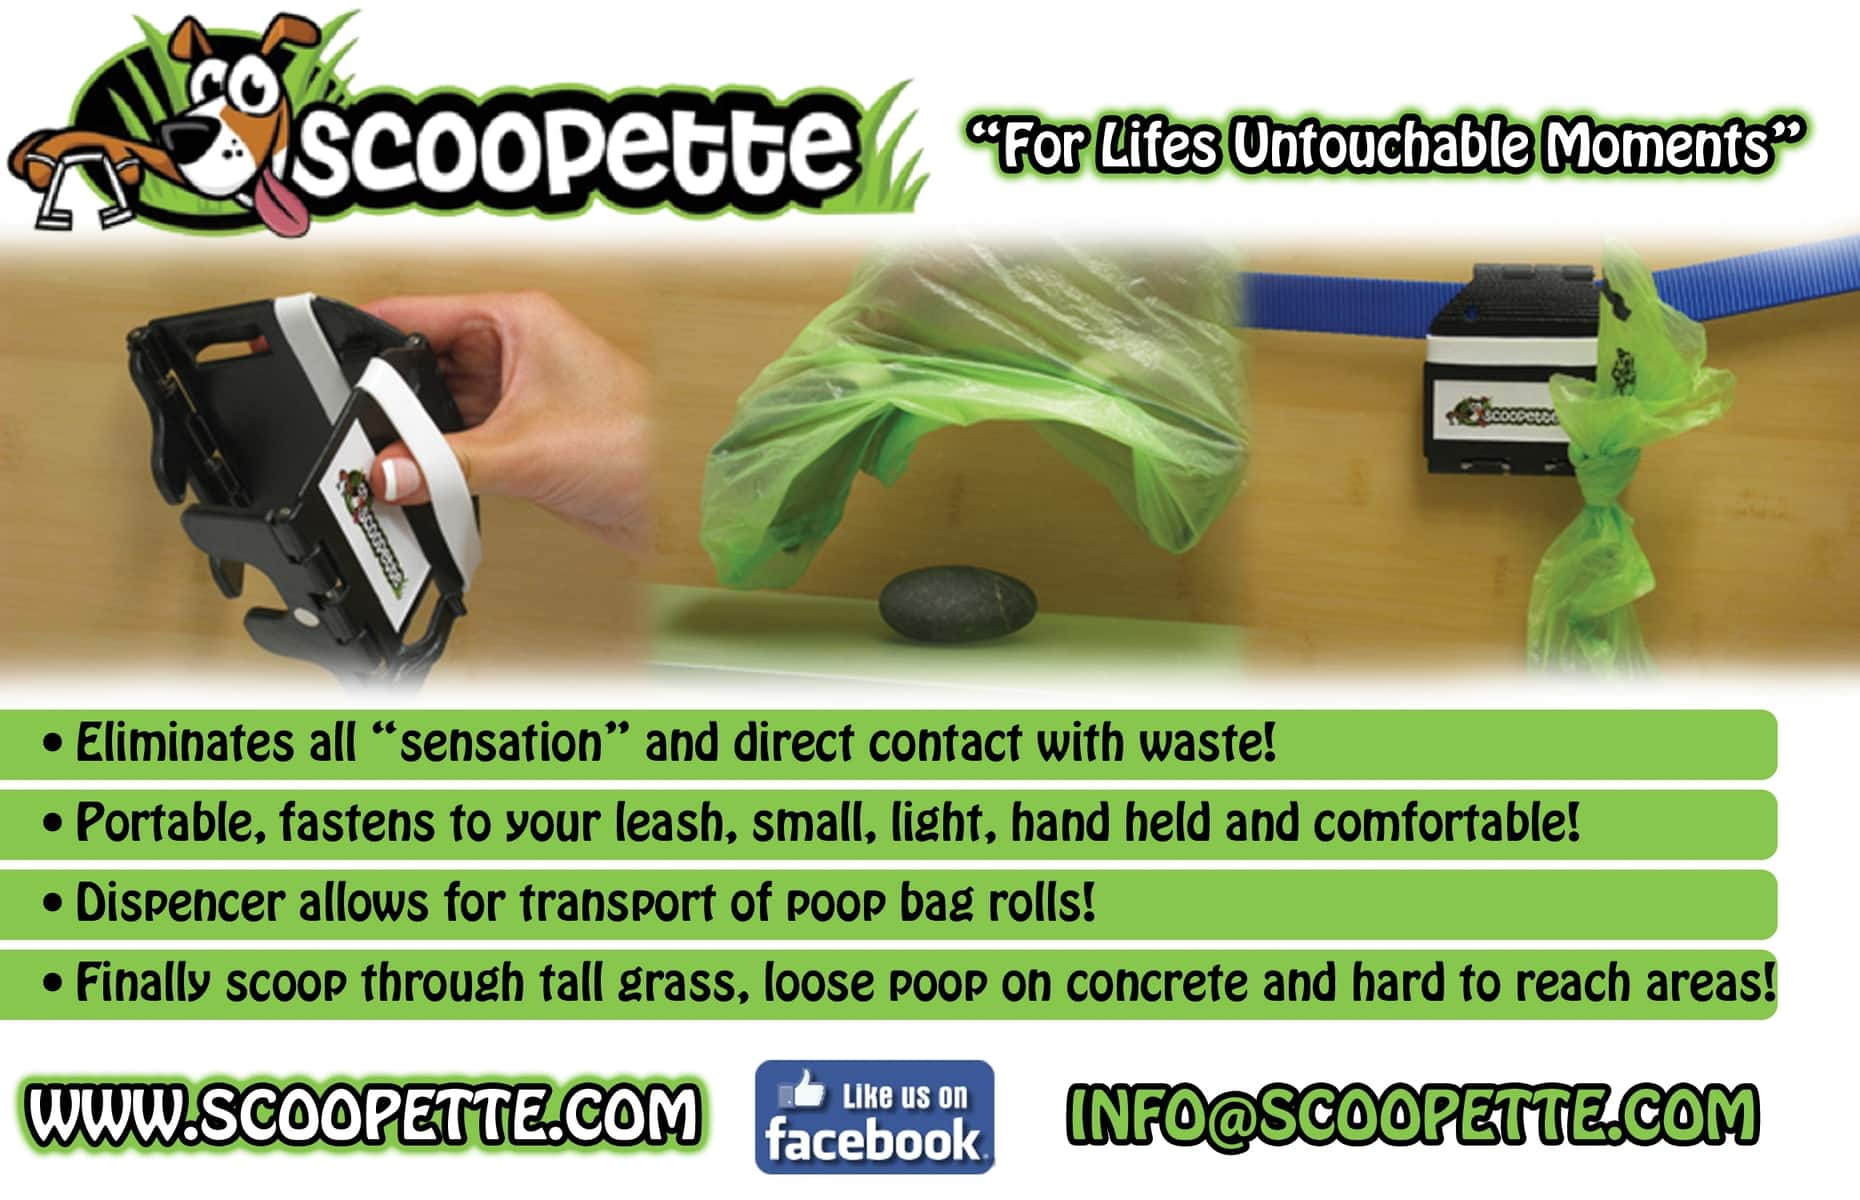 Scoop It Up with the Scoopette!